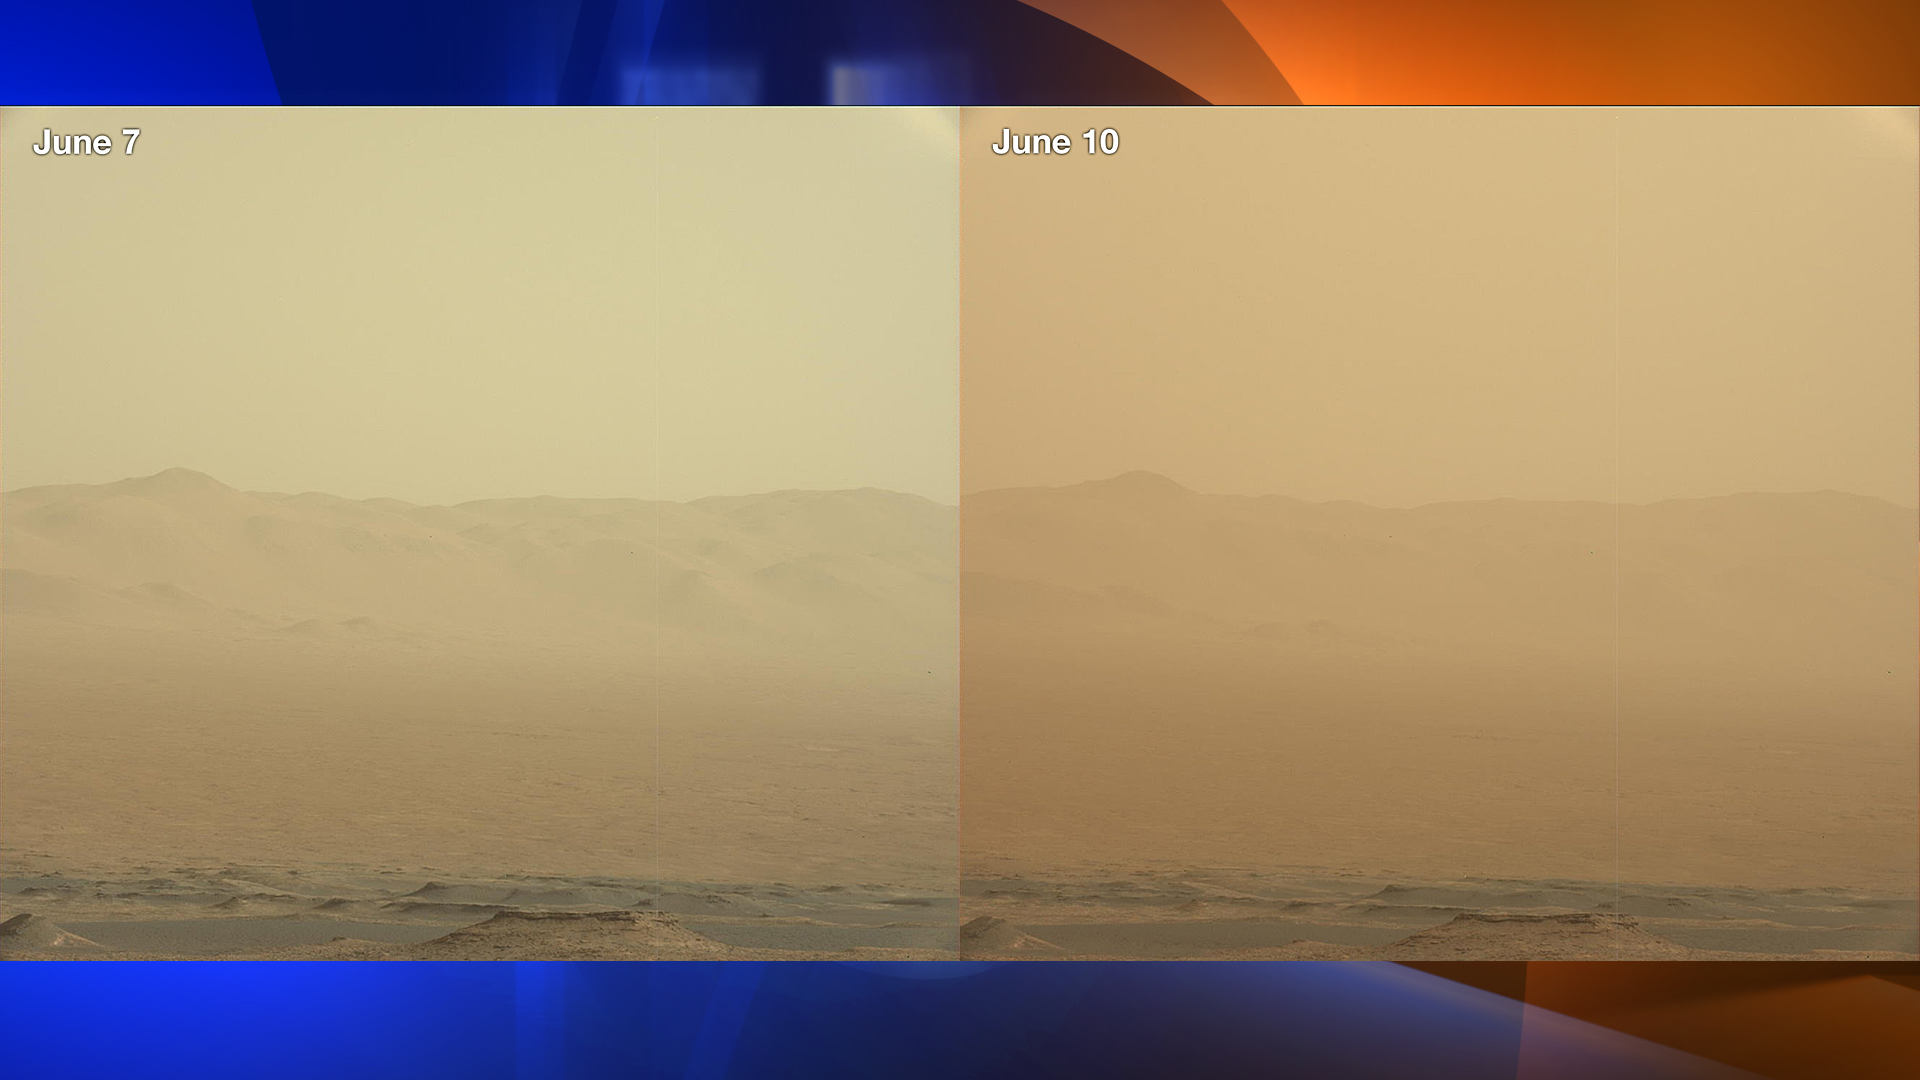 These two views from NASA's Curiosity rover -- from June 7, left, and June 10 -- show how dust has increased over three days from a major Martian dust storm. (Credit: NASA)